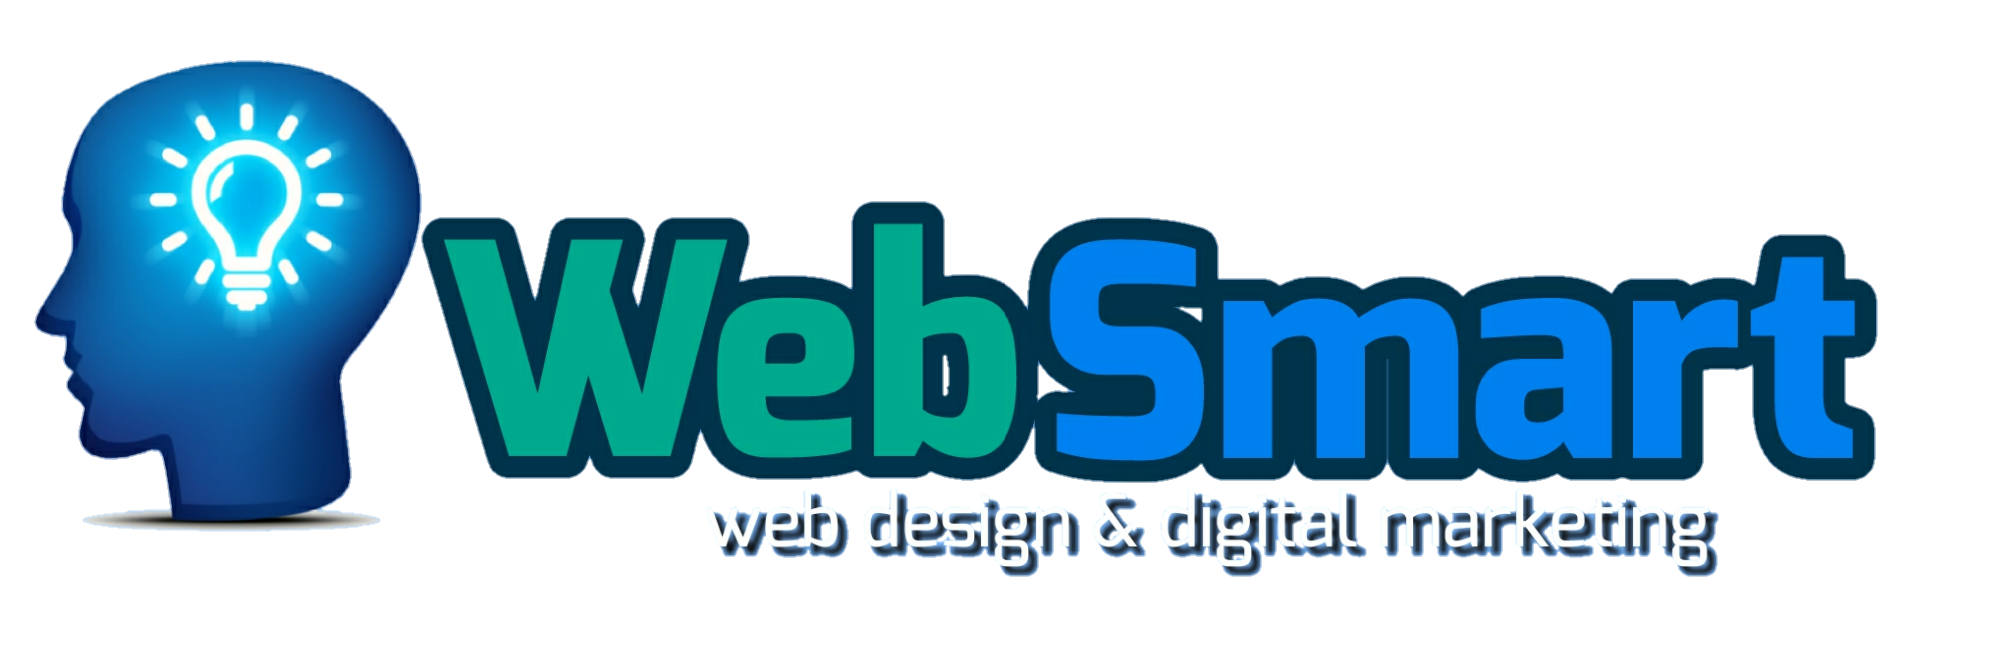 Websmart Web Design & Digital Marketing